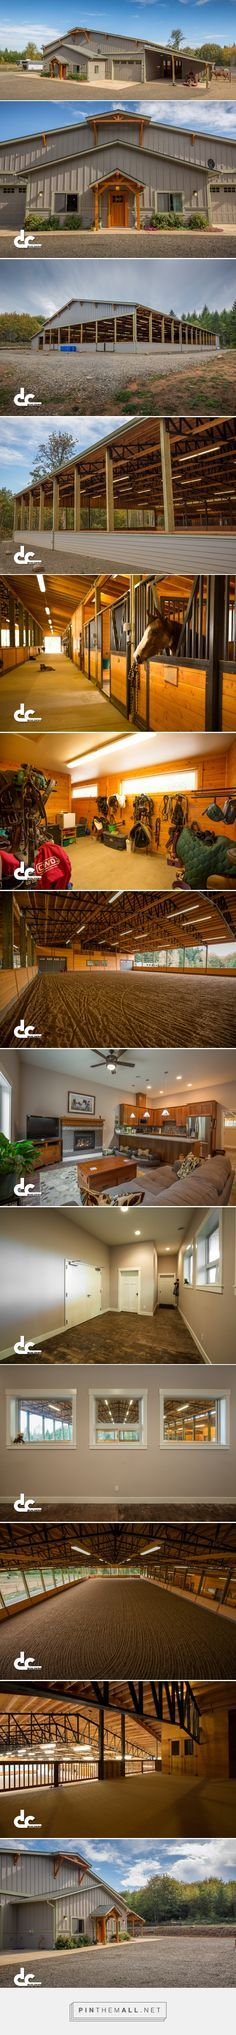 Awesome barn for your horses! Just sharing a gorgeous barn with you! A girl can dream! Covered Riding Arena With Apartment In Oregon City, OR - DC Builders - created via https://pinthemall.net